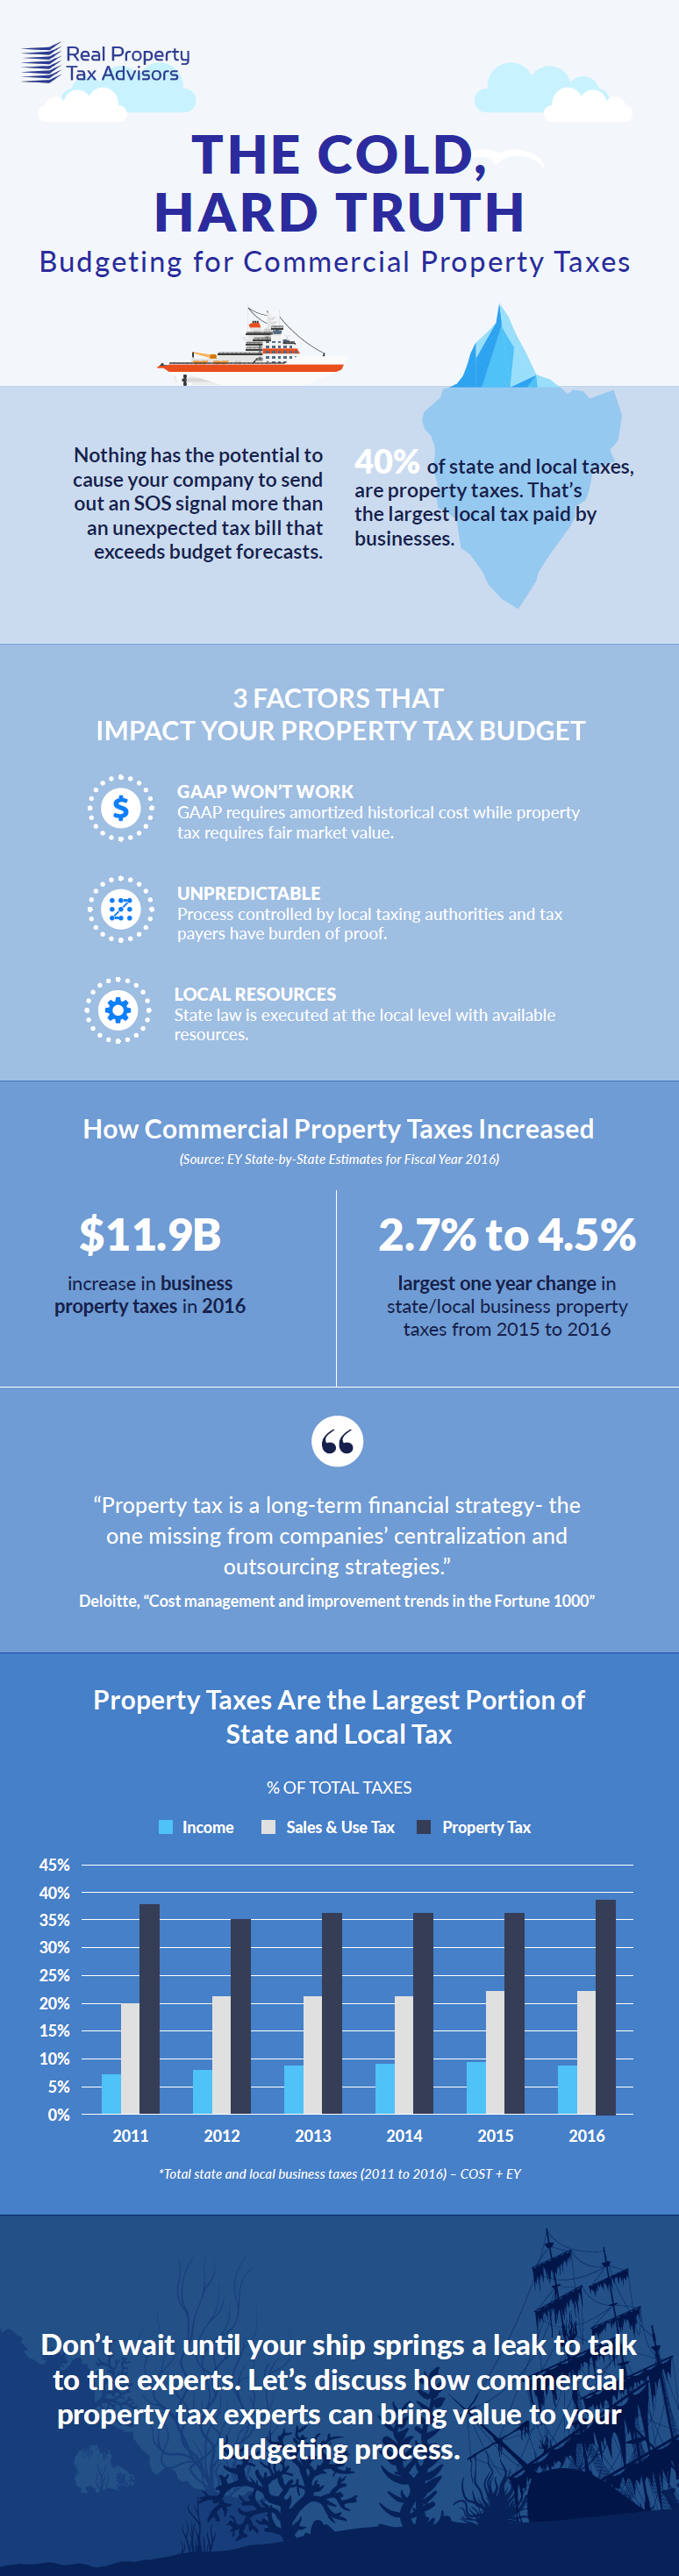 Commercial Property Taxes Budgeting Infographic